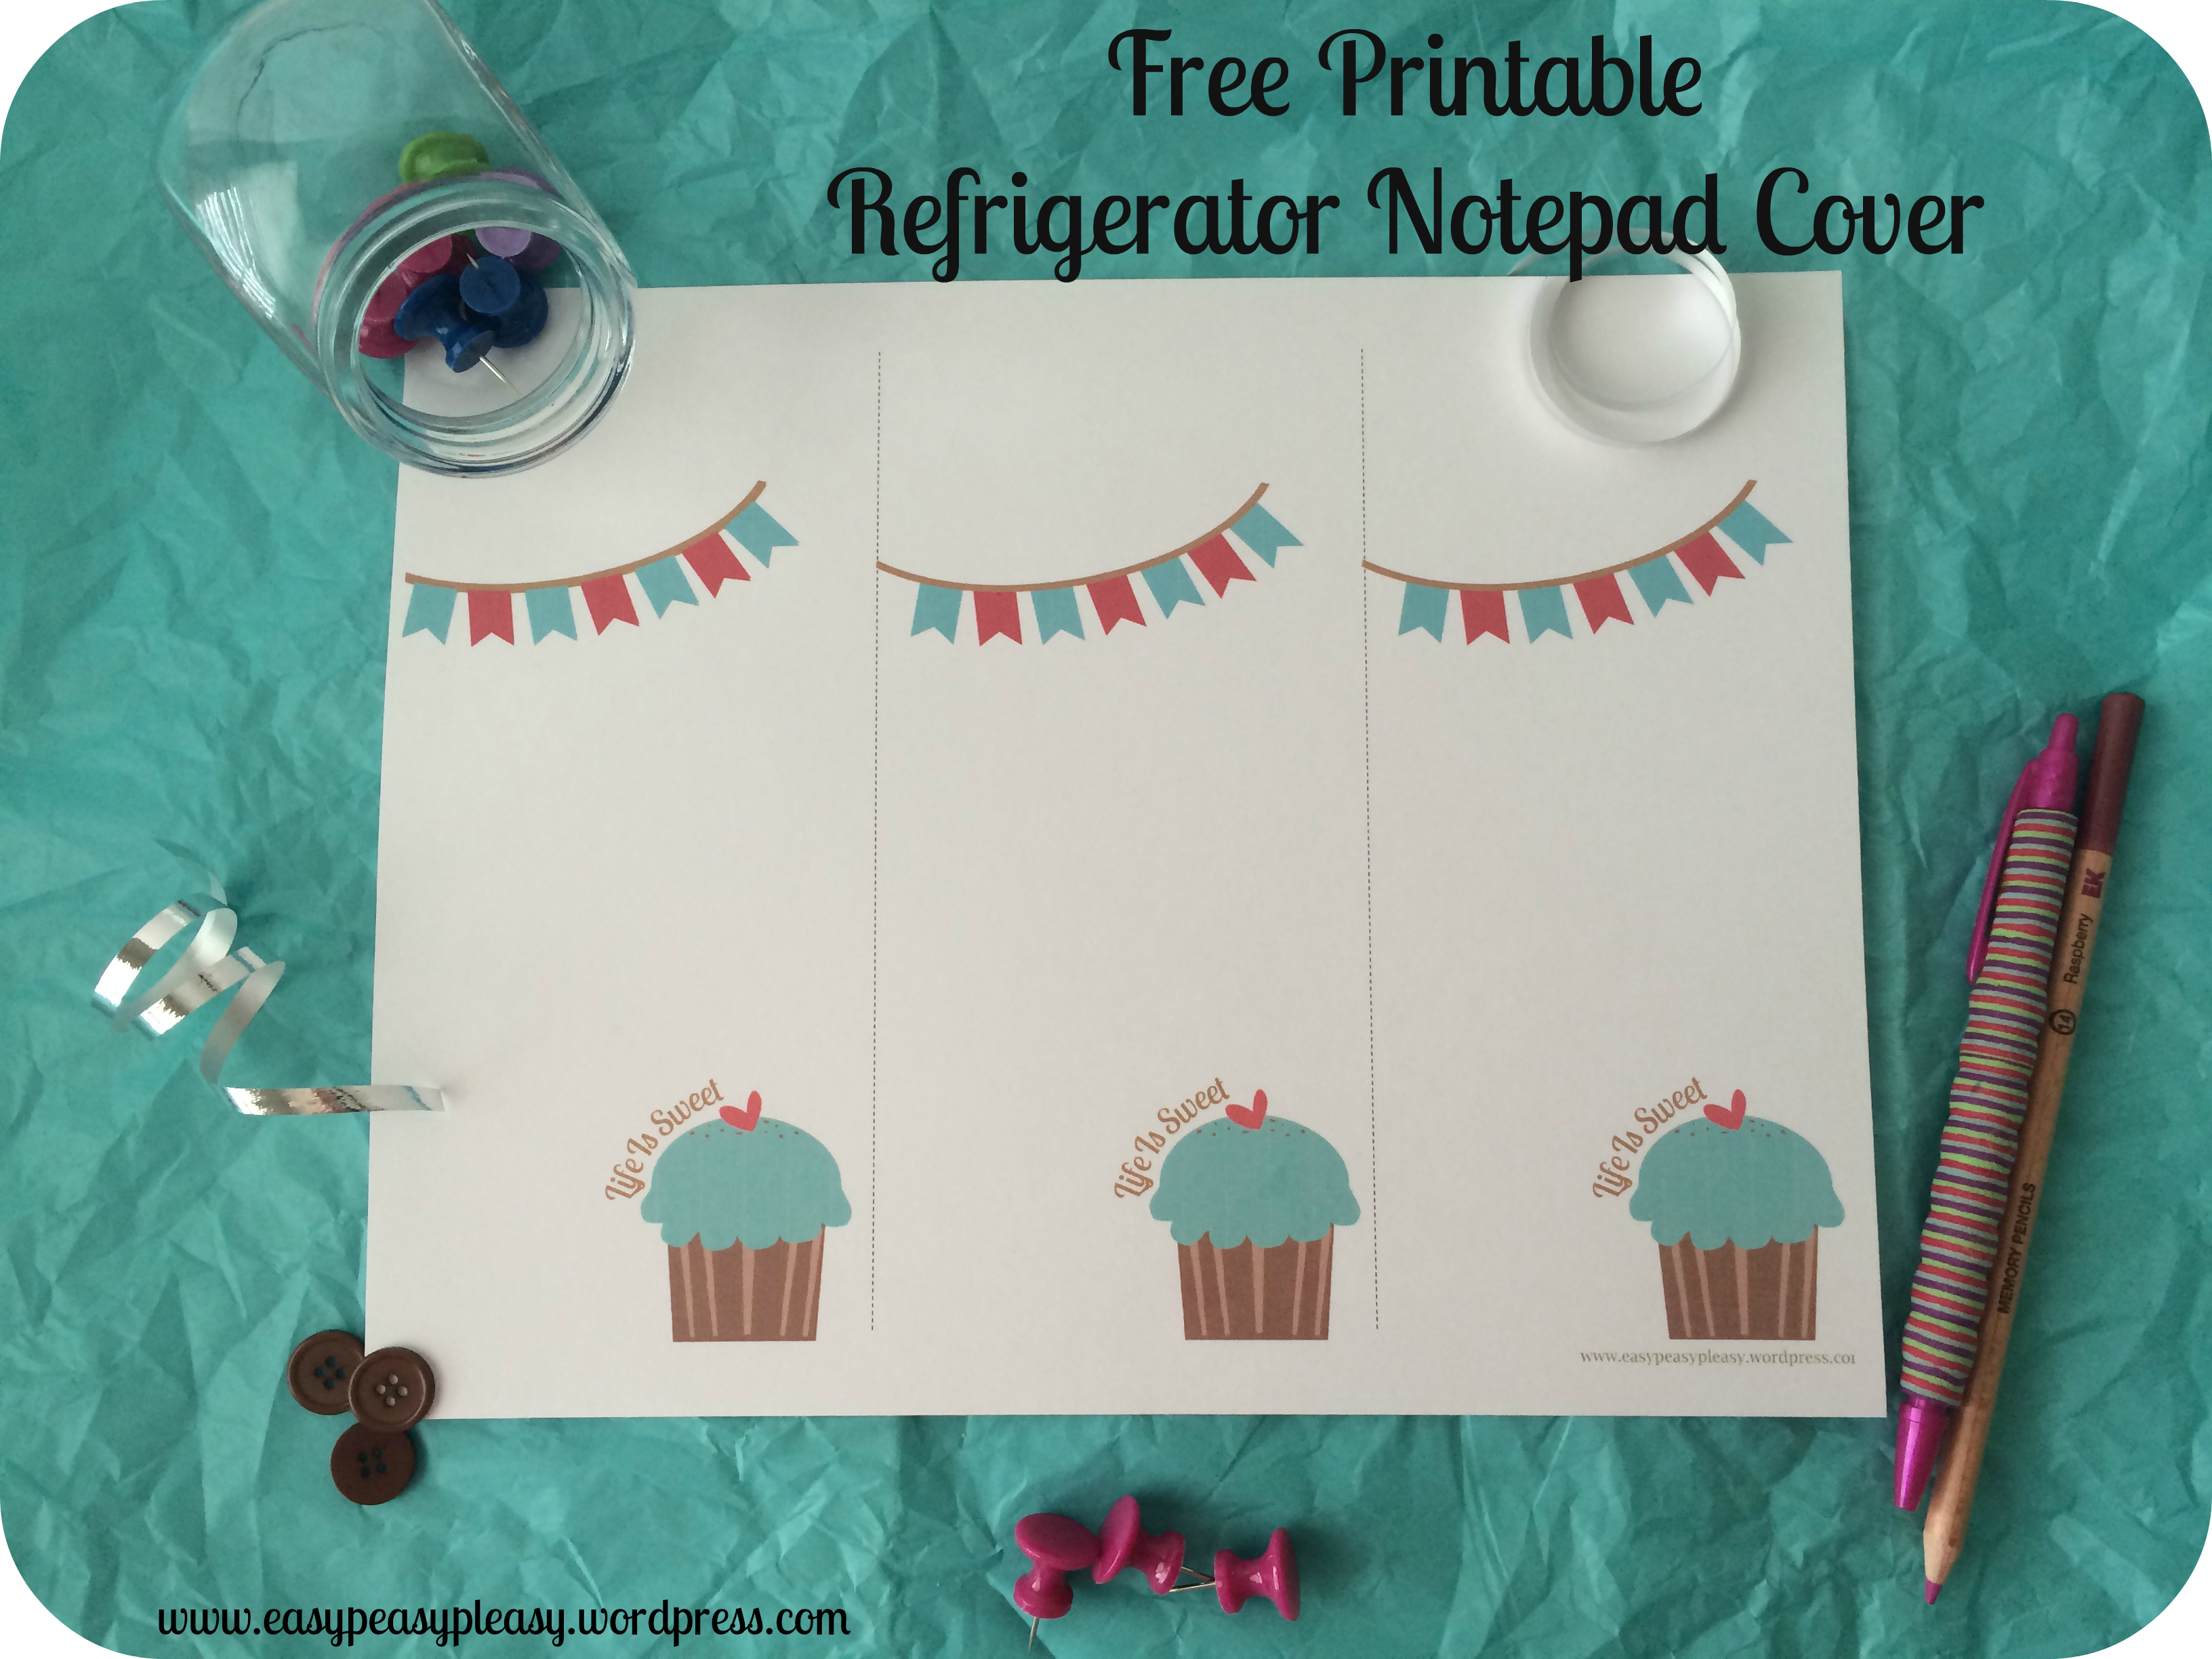 Free Printable Refrigerator Notepad Cover Full Sheet